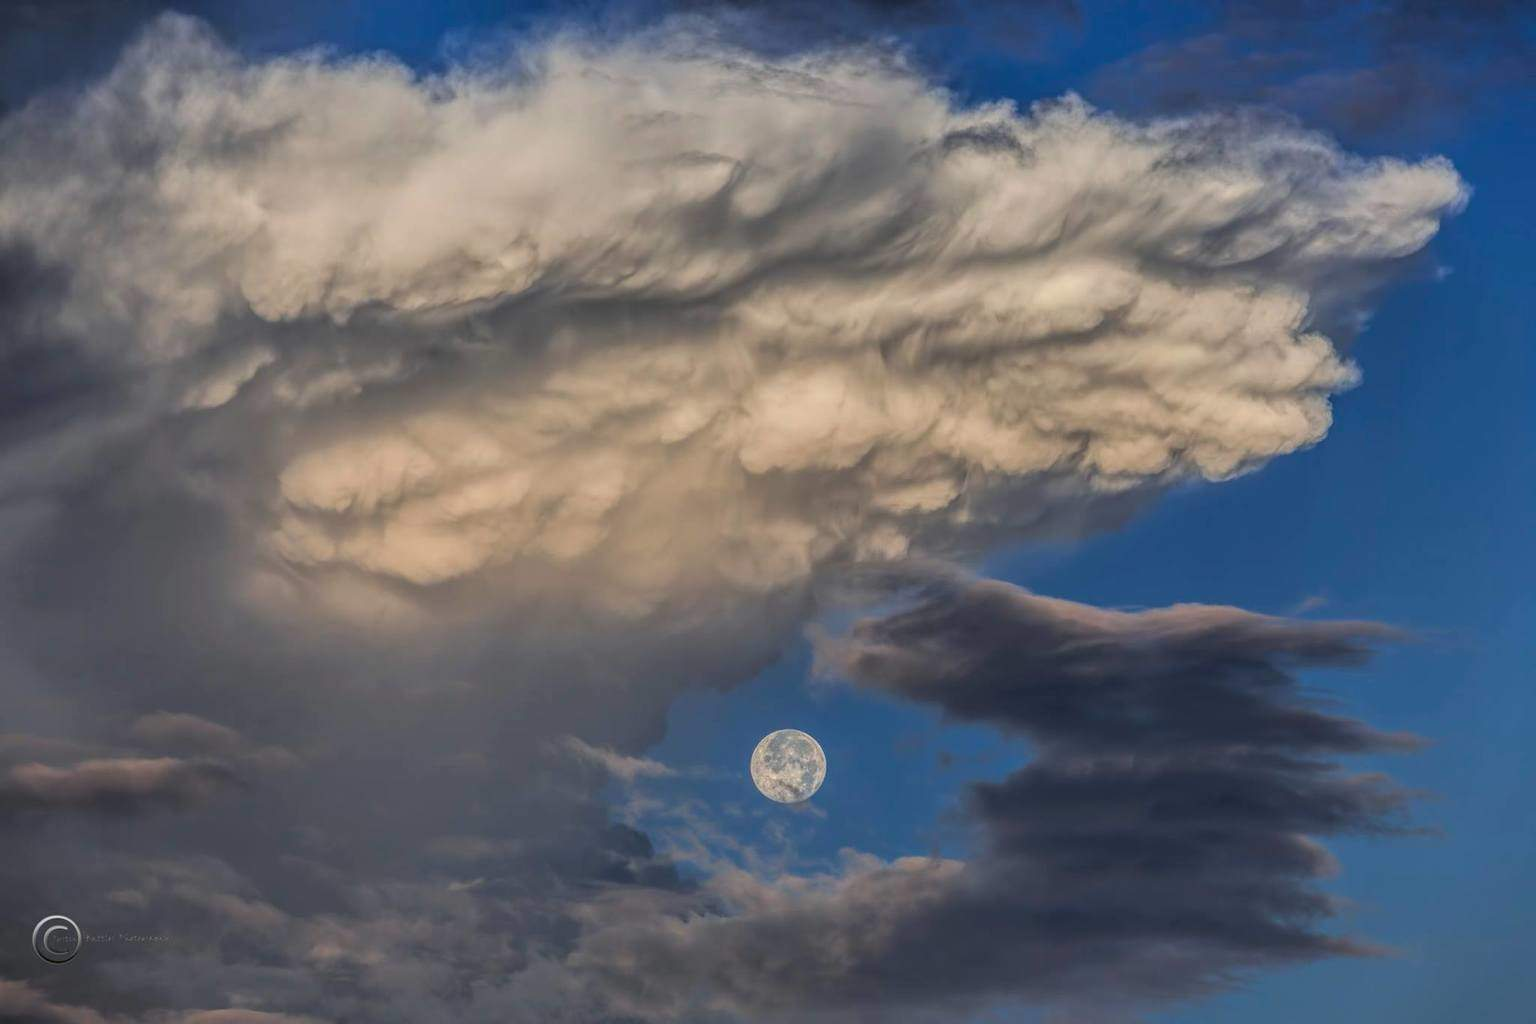 99.5% full moon through a dying thunderstorm off the coast of Tampa, Florida this morning